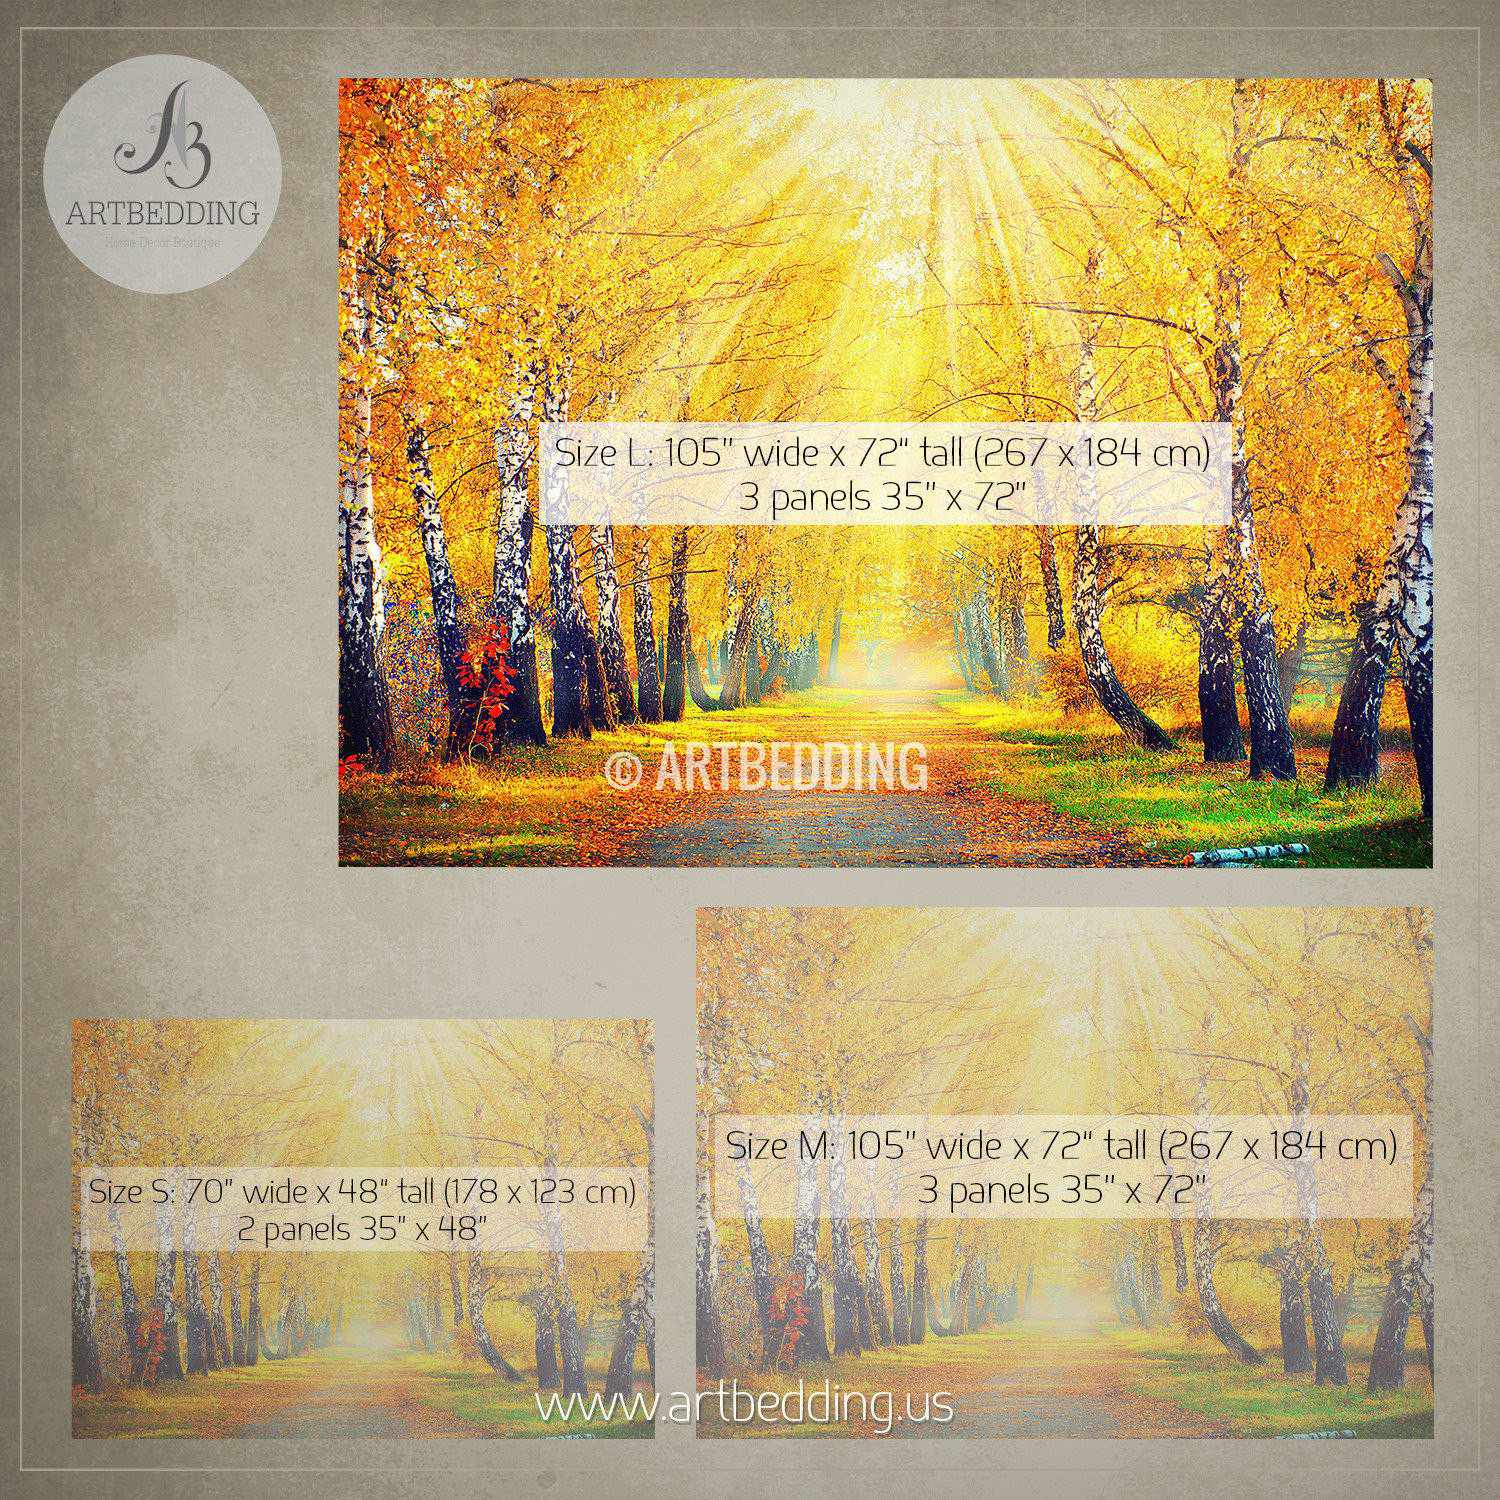 Beautiful Autumn scene photo wall mural - ARTBEDDING